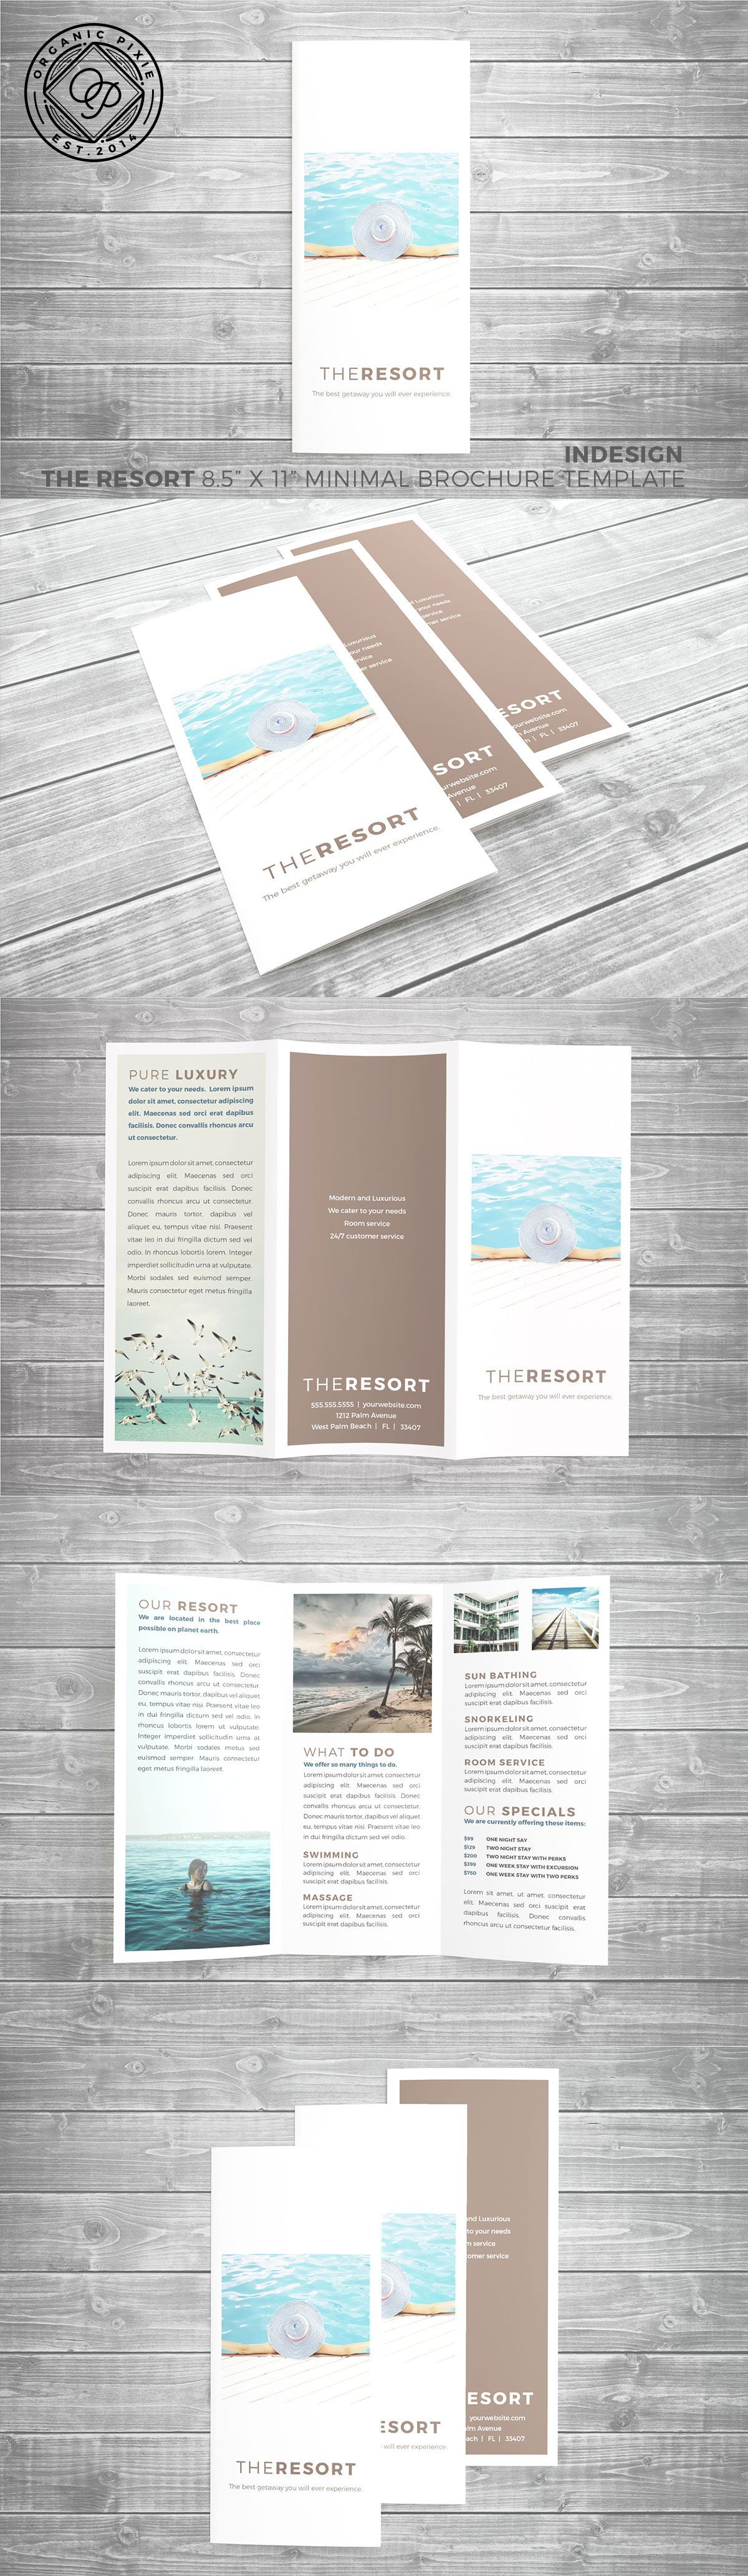 this is an easy to use turn key vertical brochure design